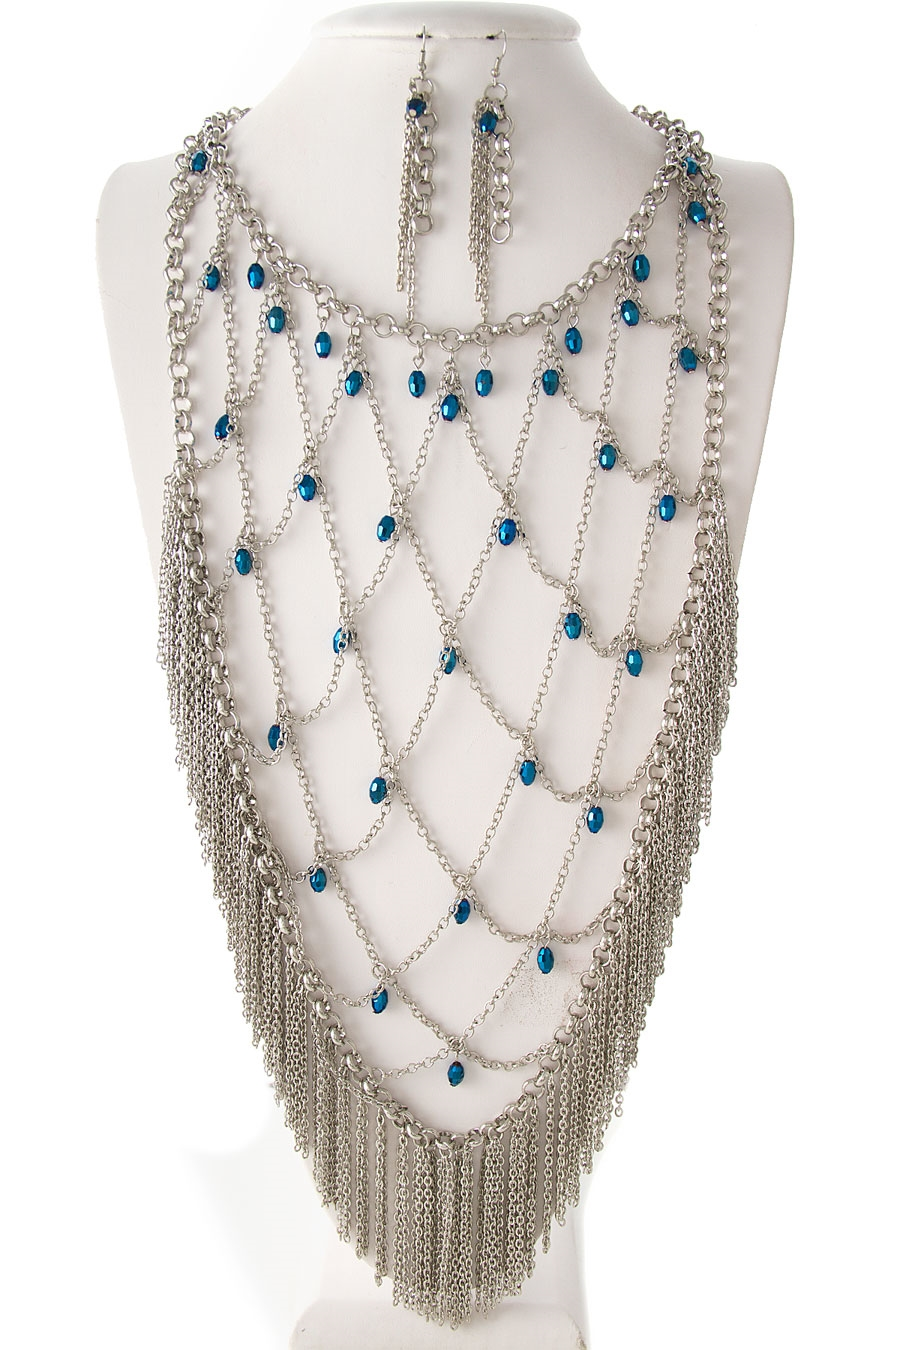 FRINGE DROP NECKLACE - orangeshine.com